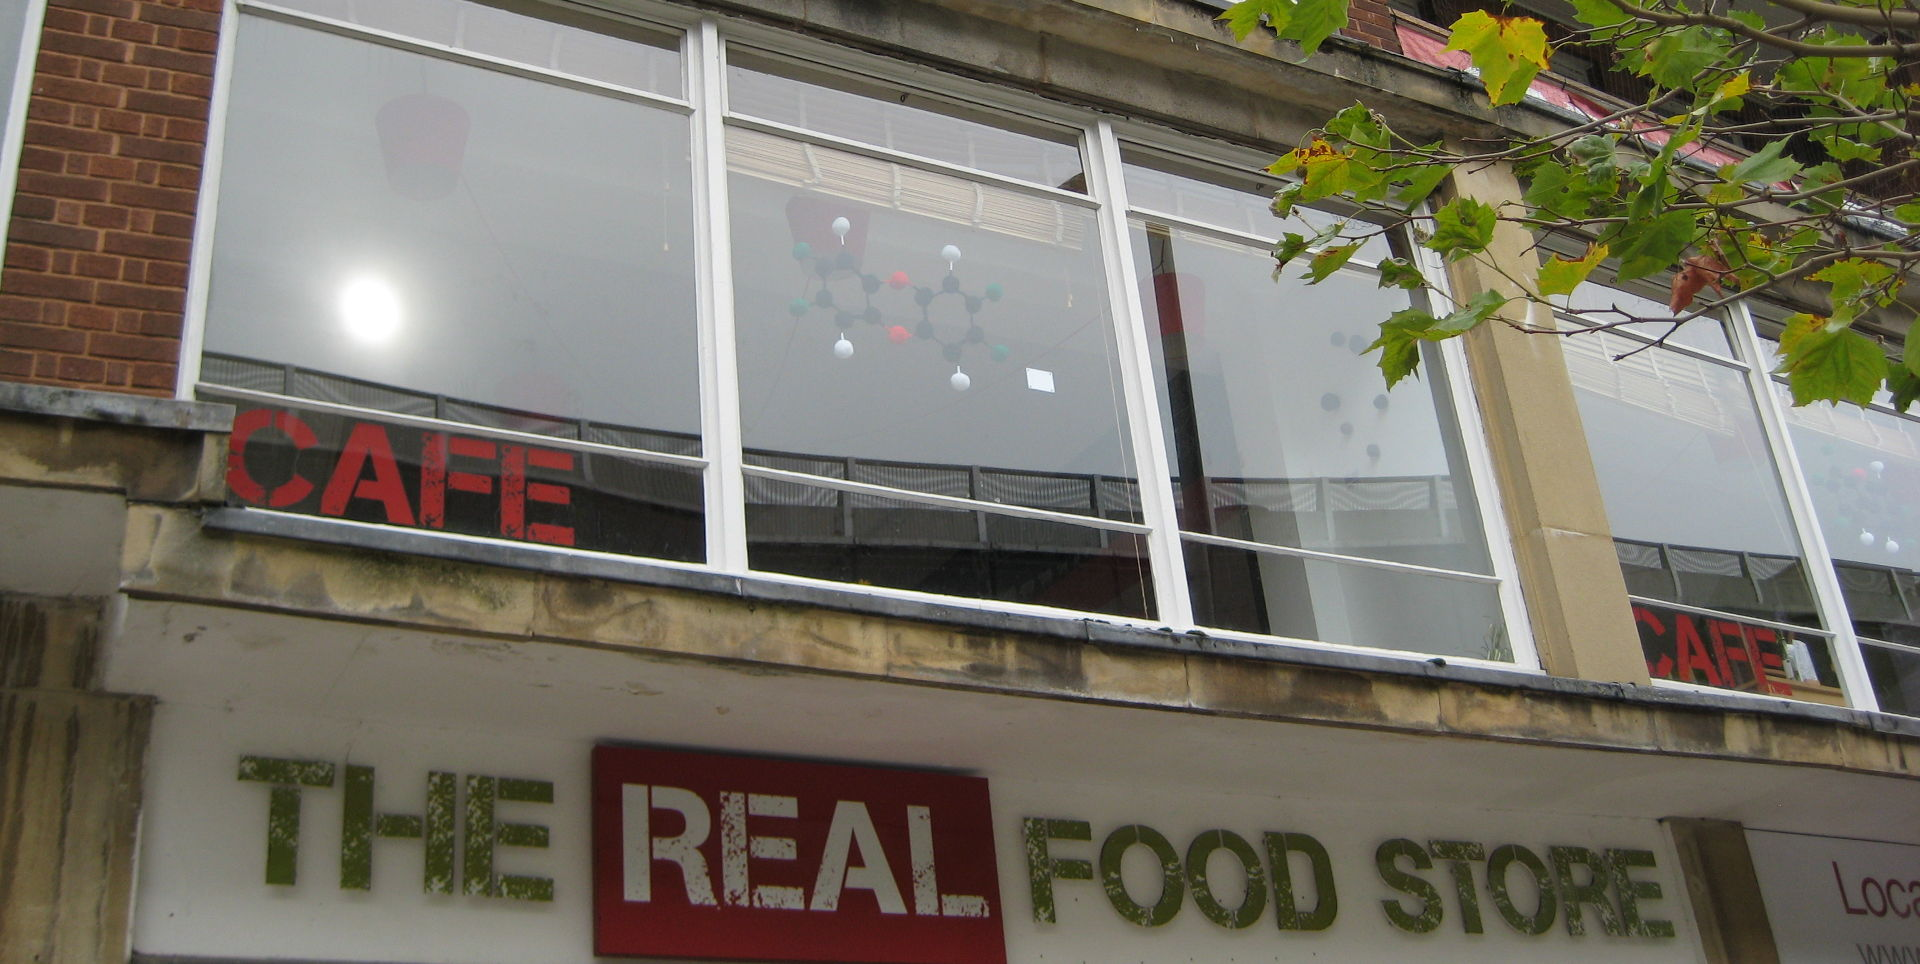 2,3,7,8-Tetrachlorodibenzo-para-dioxin framed in the window of the Real Food Store café